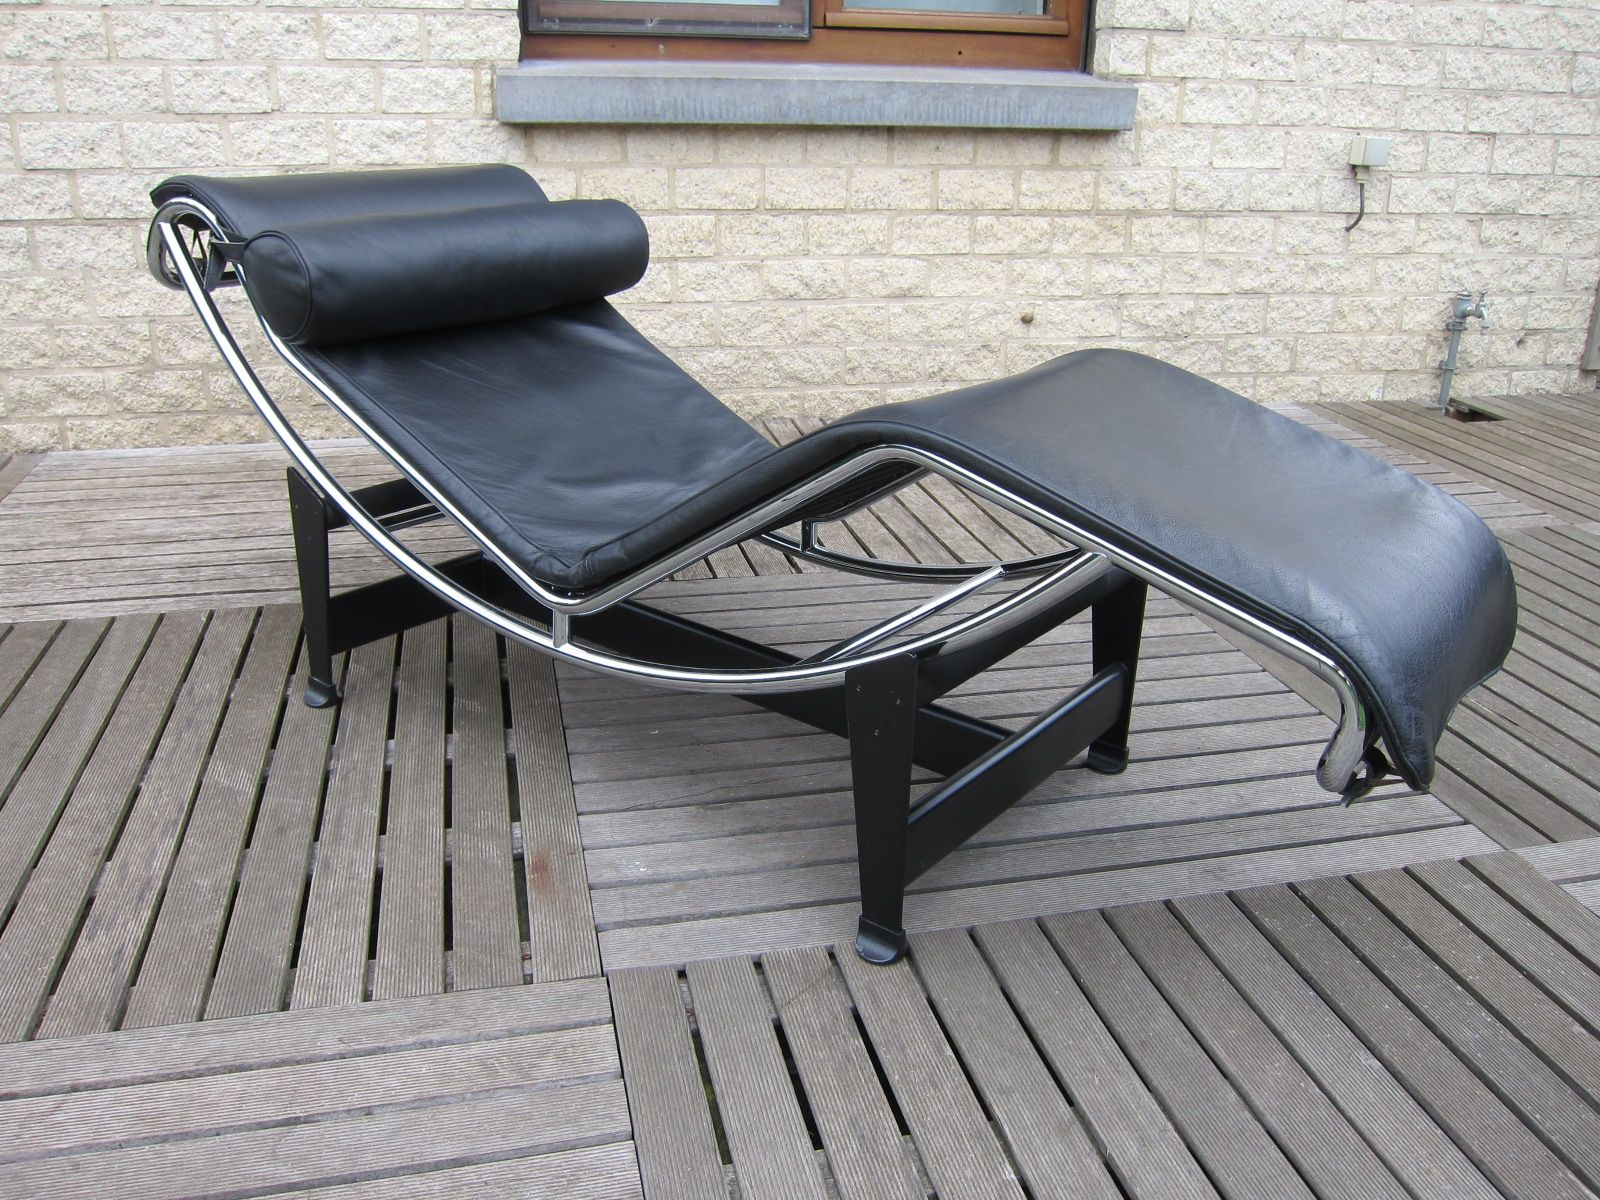 Vintage lc4 chaise longue by le corbusier pierre for Cassina le corbusier lc4 chaise longue